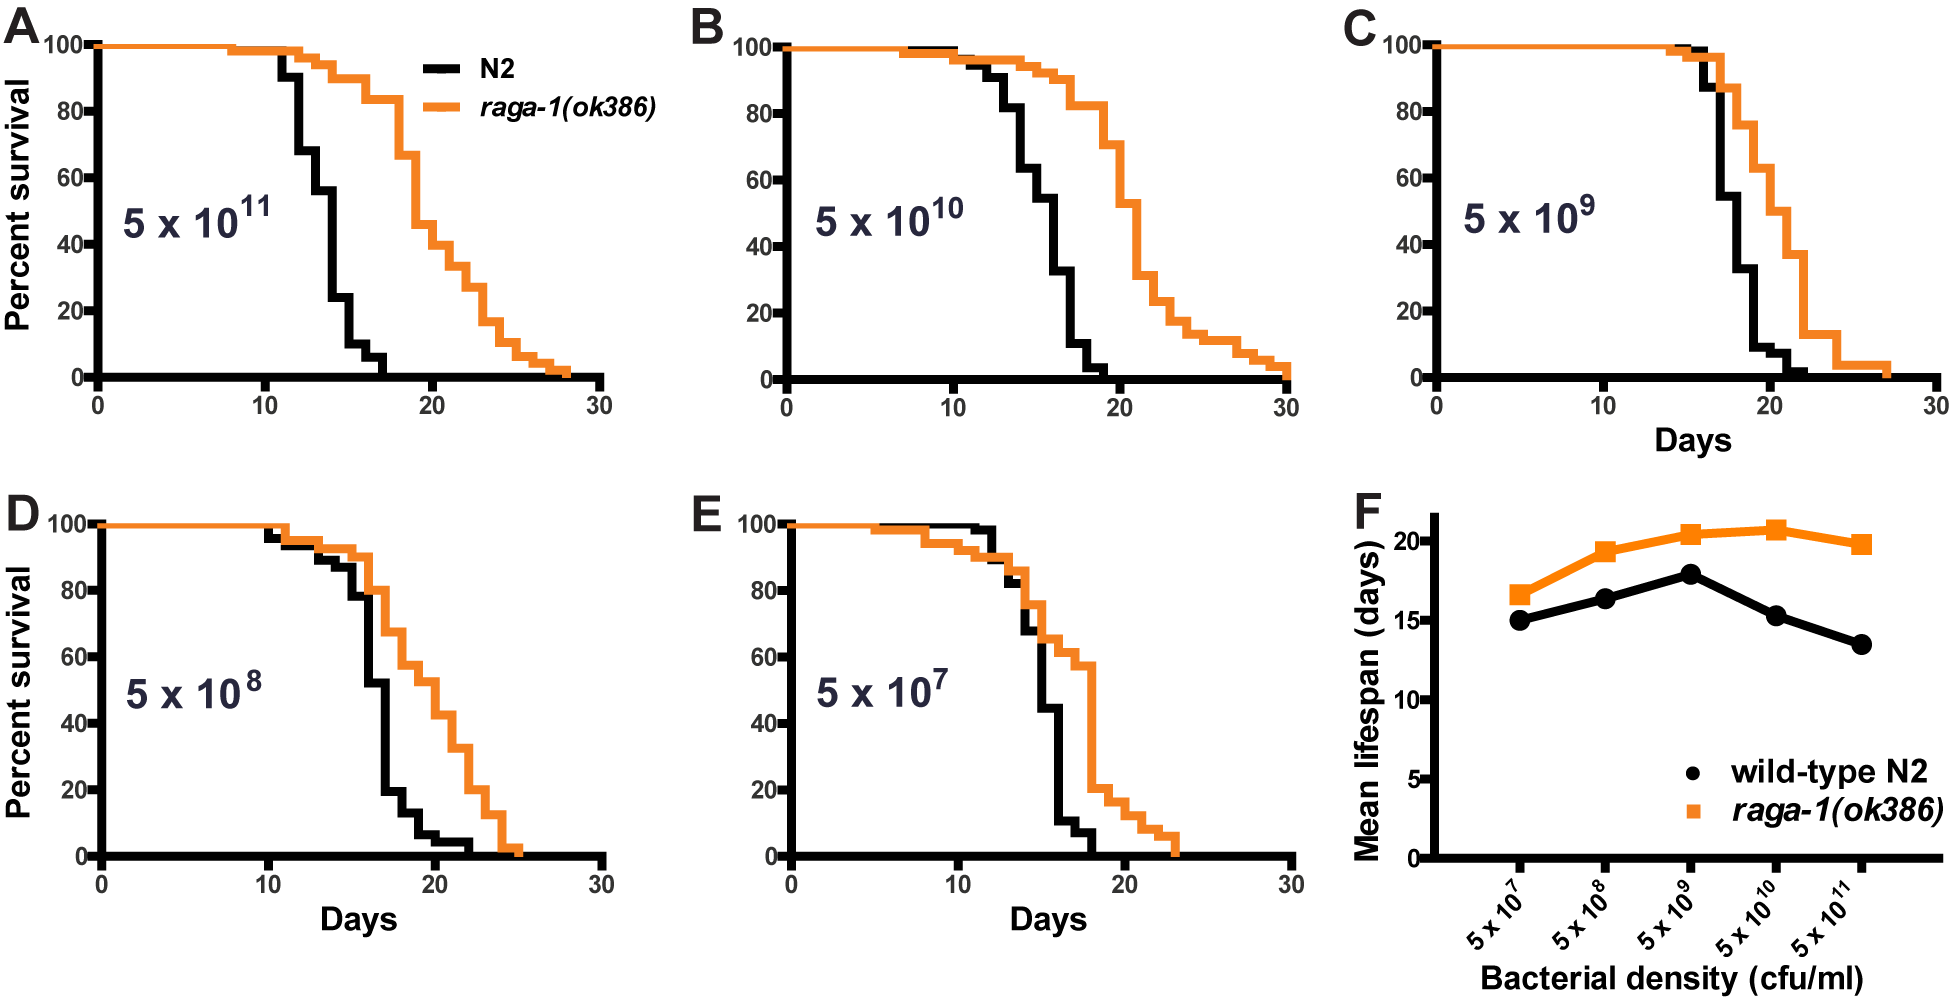 Effect of dietary restriction on <i>raga-1(ok386)</i> lifespan.